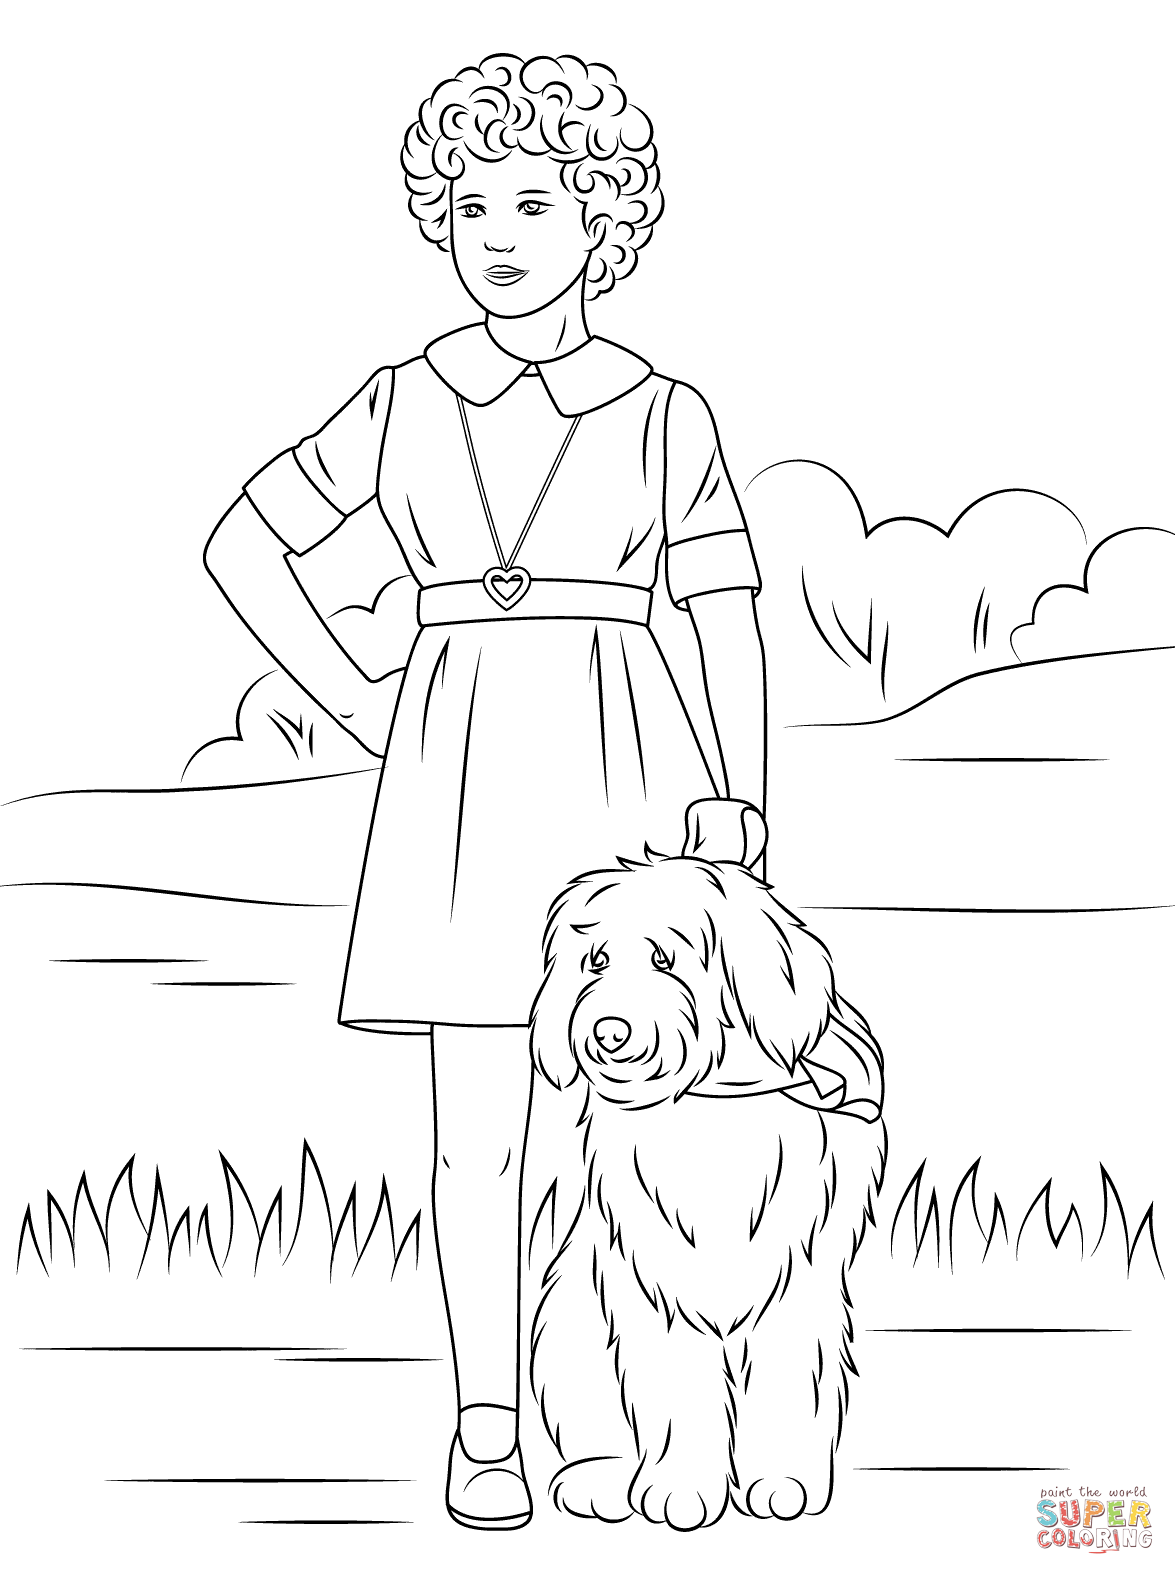 Orphan Annie With One Lung Coloring Page Free Printable Coloring